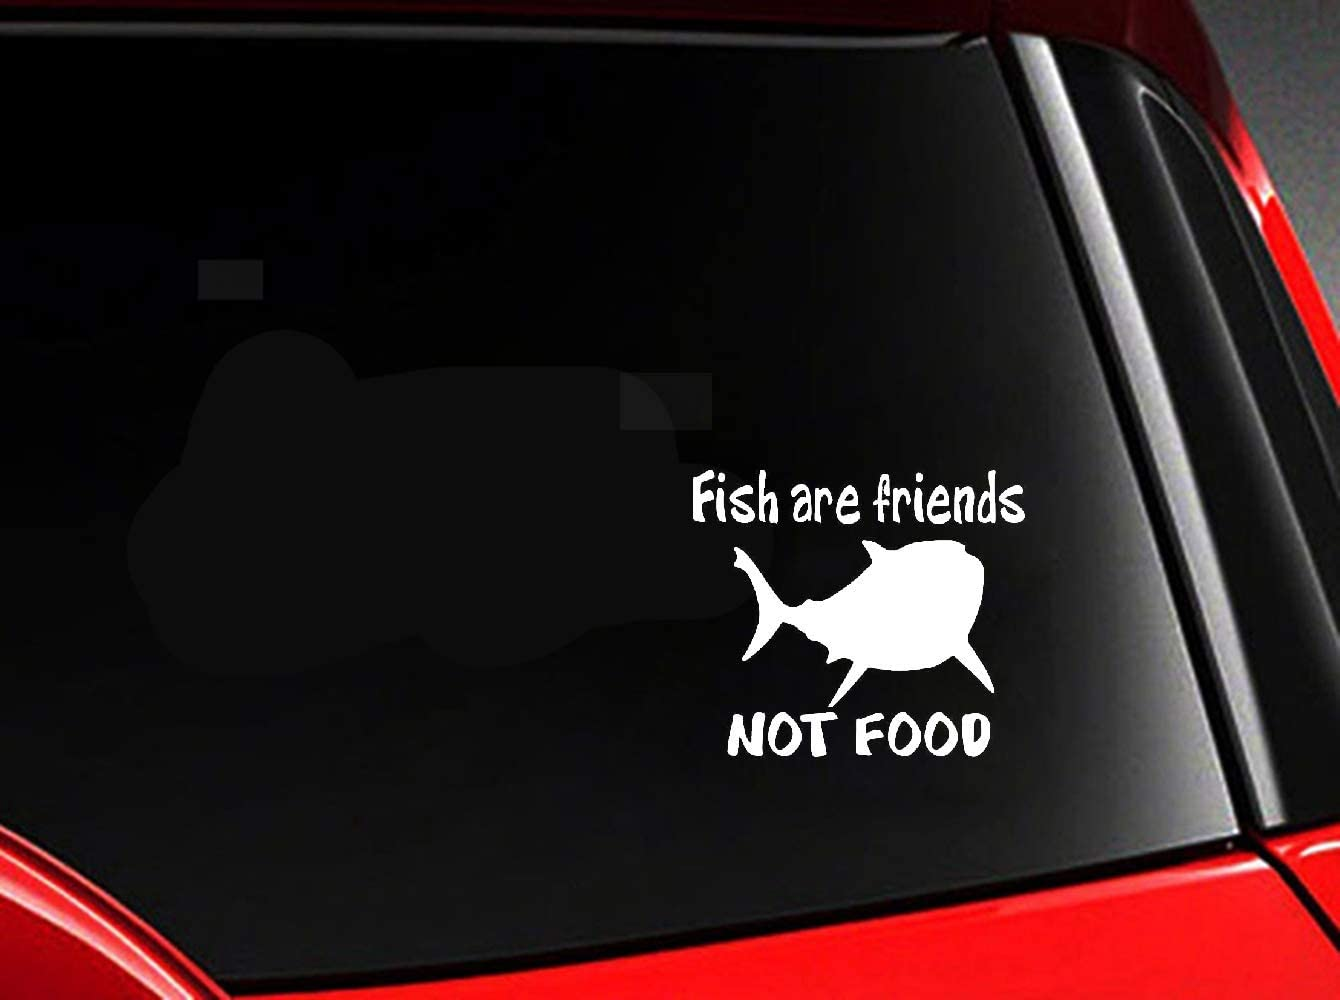 Mukia 14.9Cmx12.9Cm Decal Car Sticker Fish are Friends Not Food Fish Decal Decor for Car Laptop Window Sticker